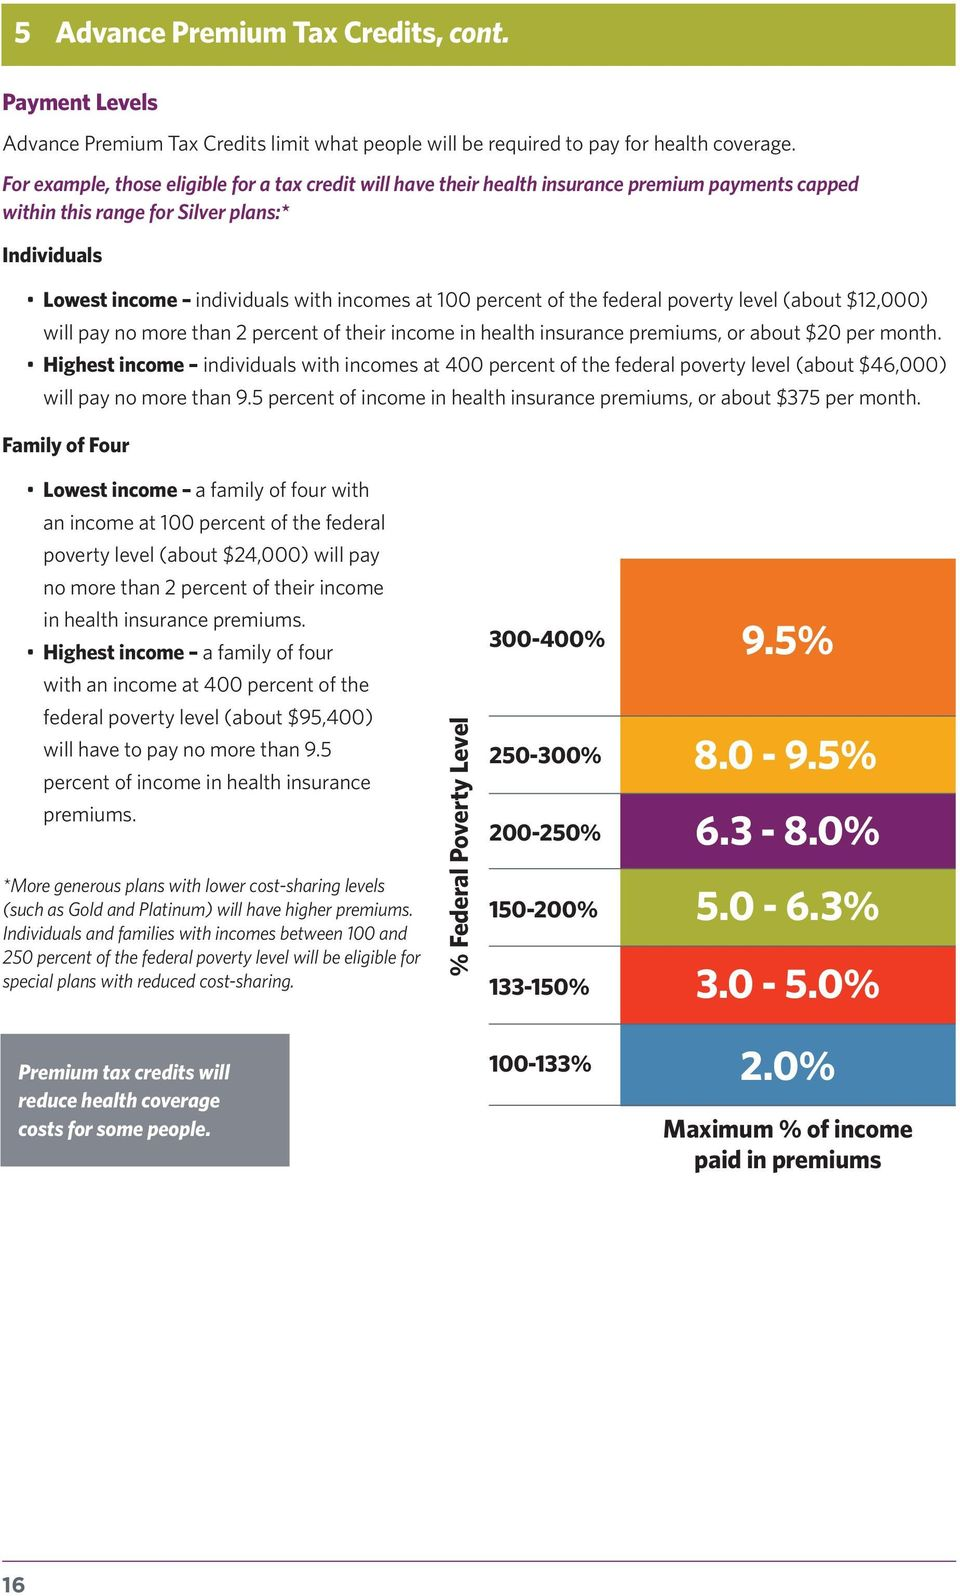 percent of the federal poverty level (about $12,000) will pay no more than 2 percent of their income in health insurance premiums, or about $20 per month.